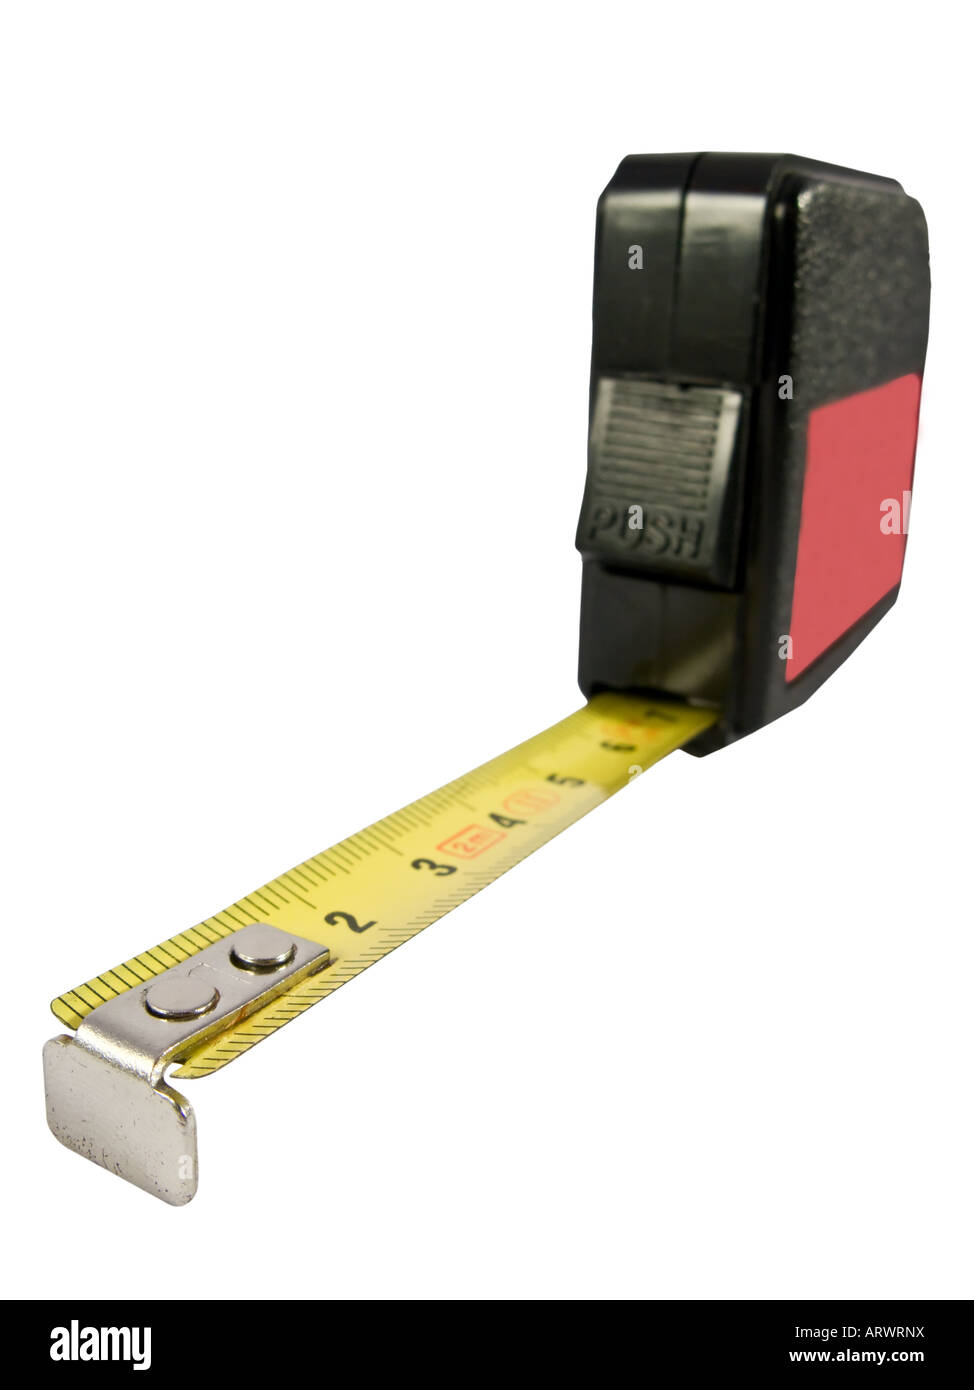 tape measure in metal with metric system - Stock Image